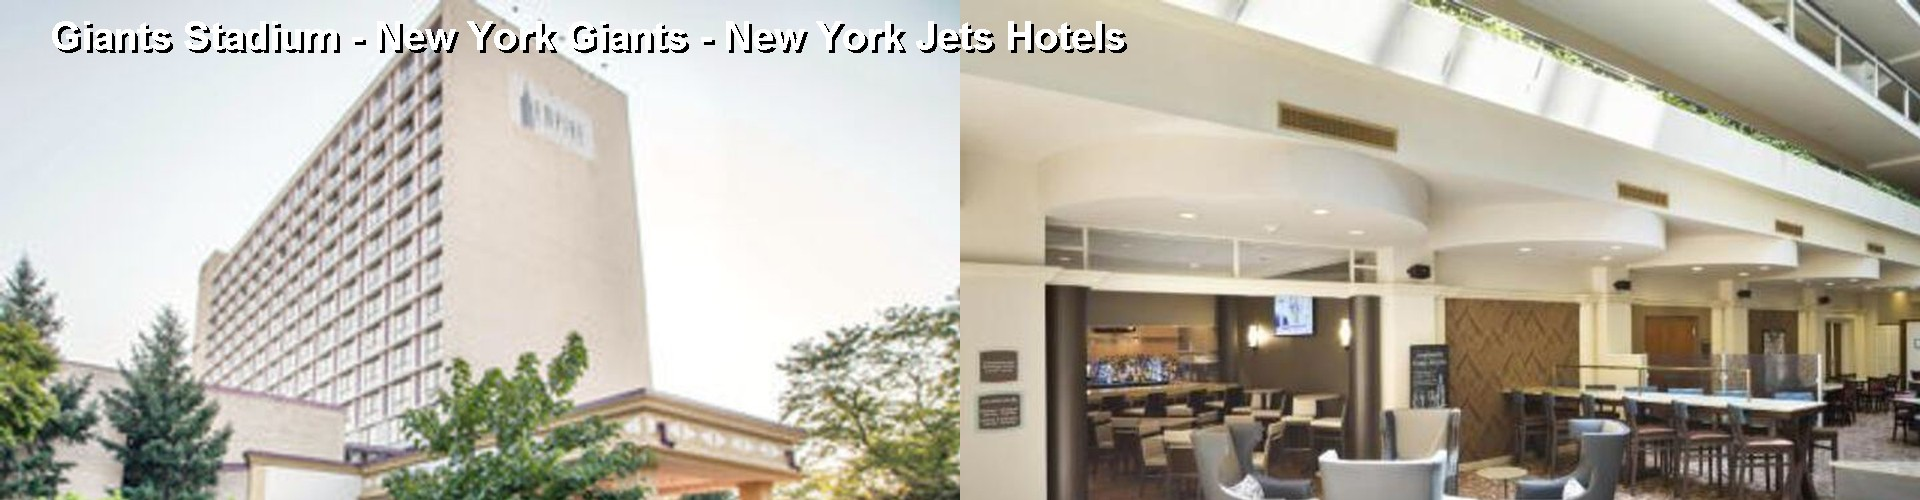 5 Best Hotels near Giants Stadium - New York Giants - New York Jets